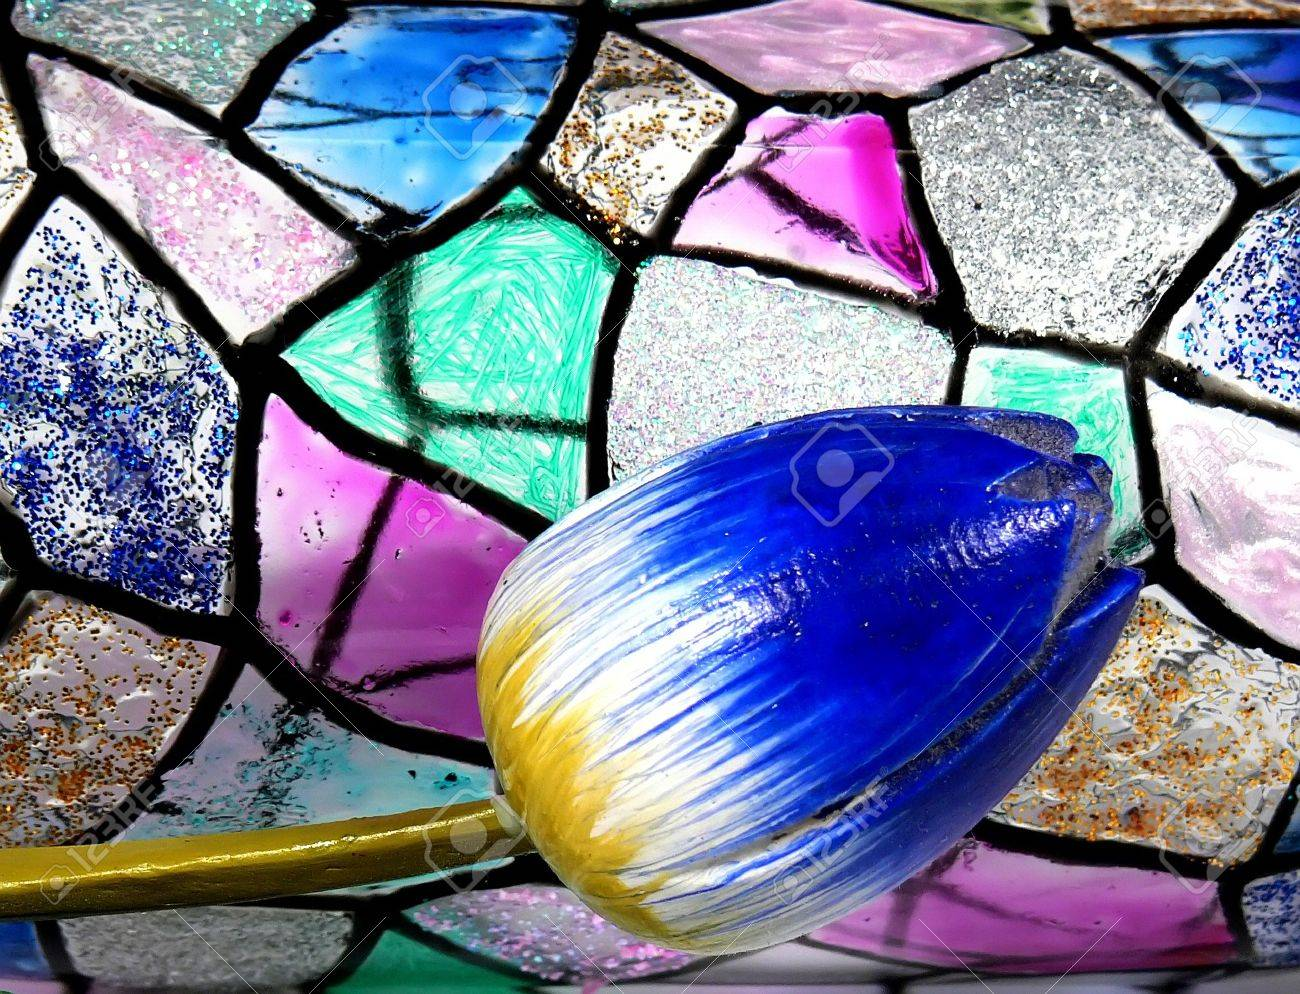 Vitraž - Page 6 2644991-Stained-glass-vitrage-with-tulip-Stock-Photo